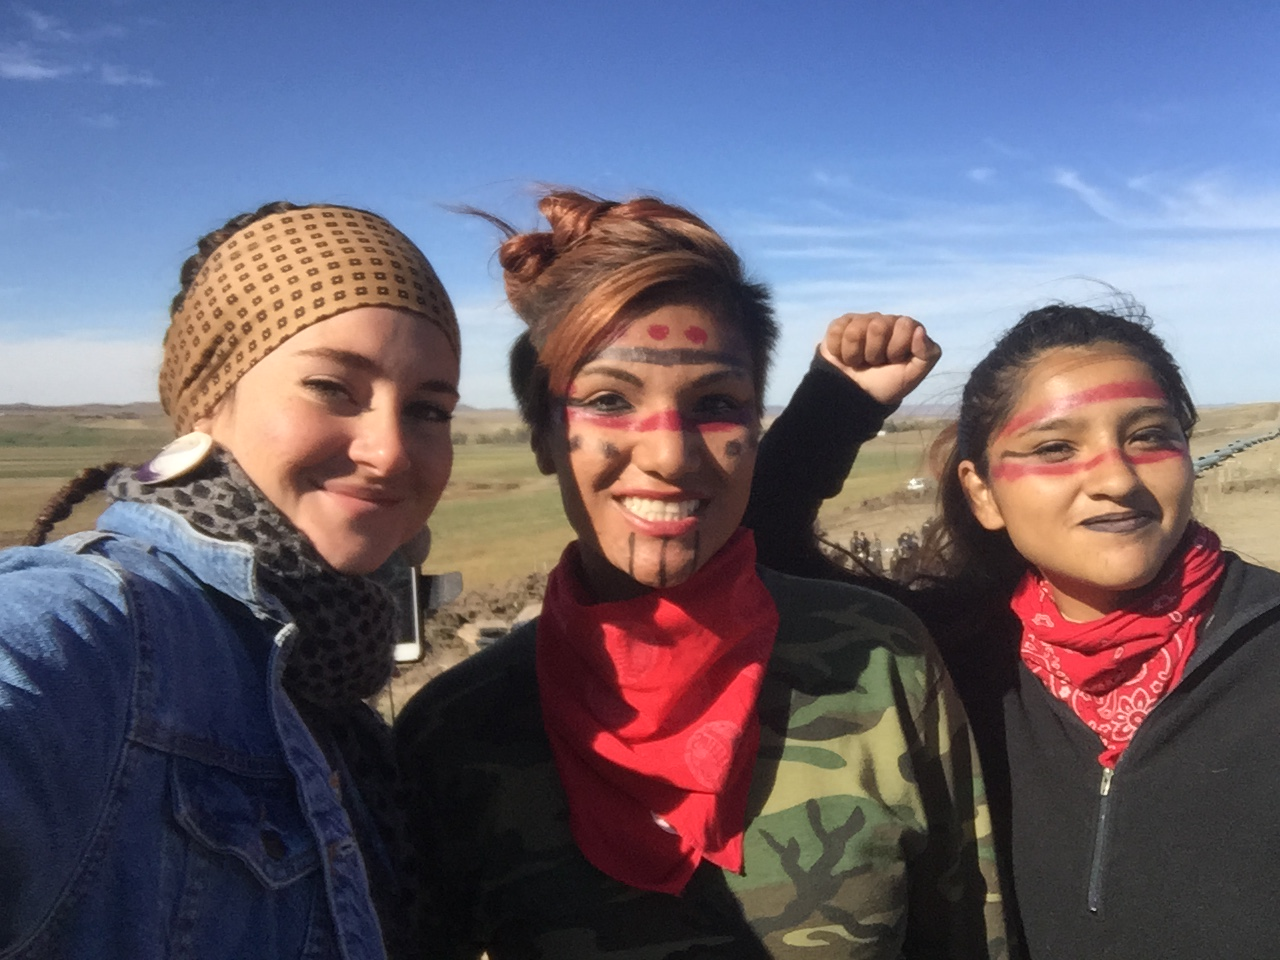 Actress Shailene Woodley (left) standing with two other people protesting the North Dakota Access Pipeline on Oct. 10, 2016.